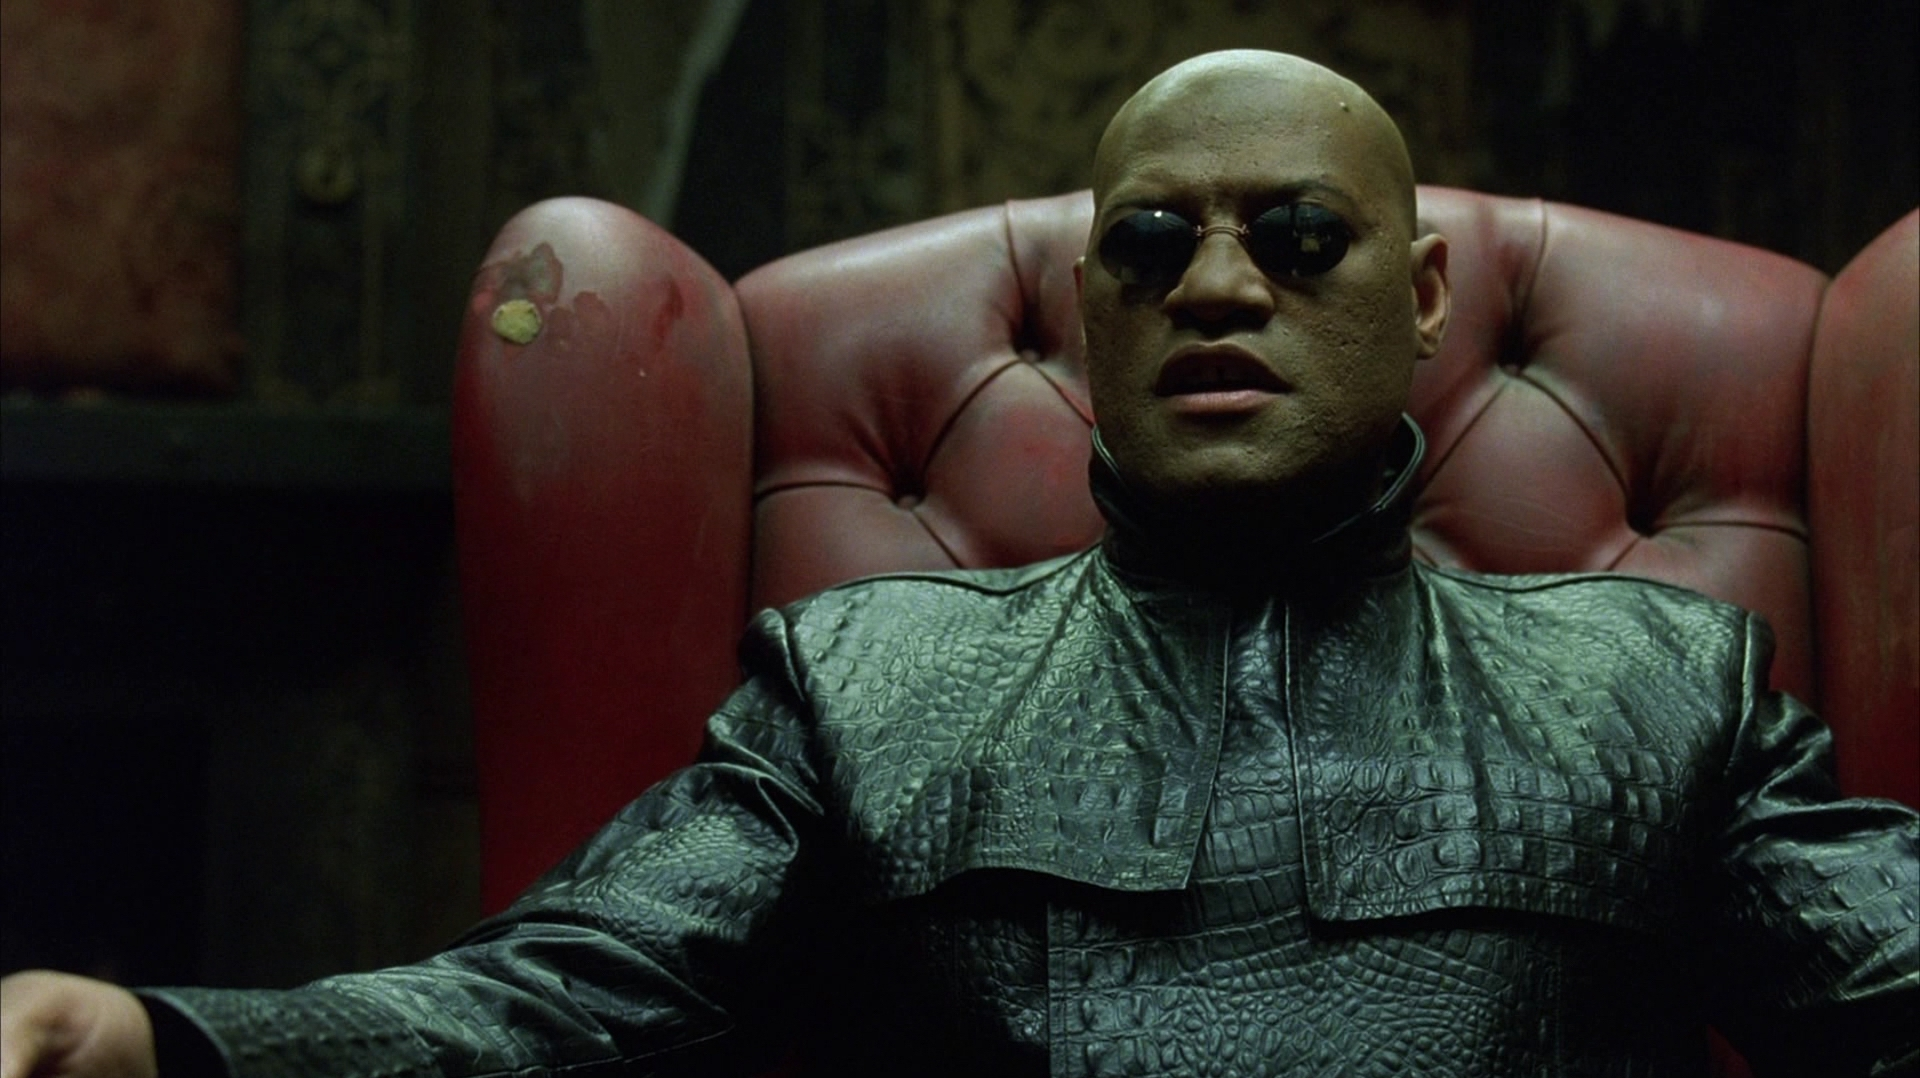 """Morpheus (from """"The Matrix"""") seated in a leather chair in a dark room."""